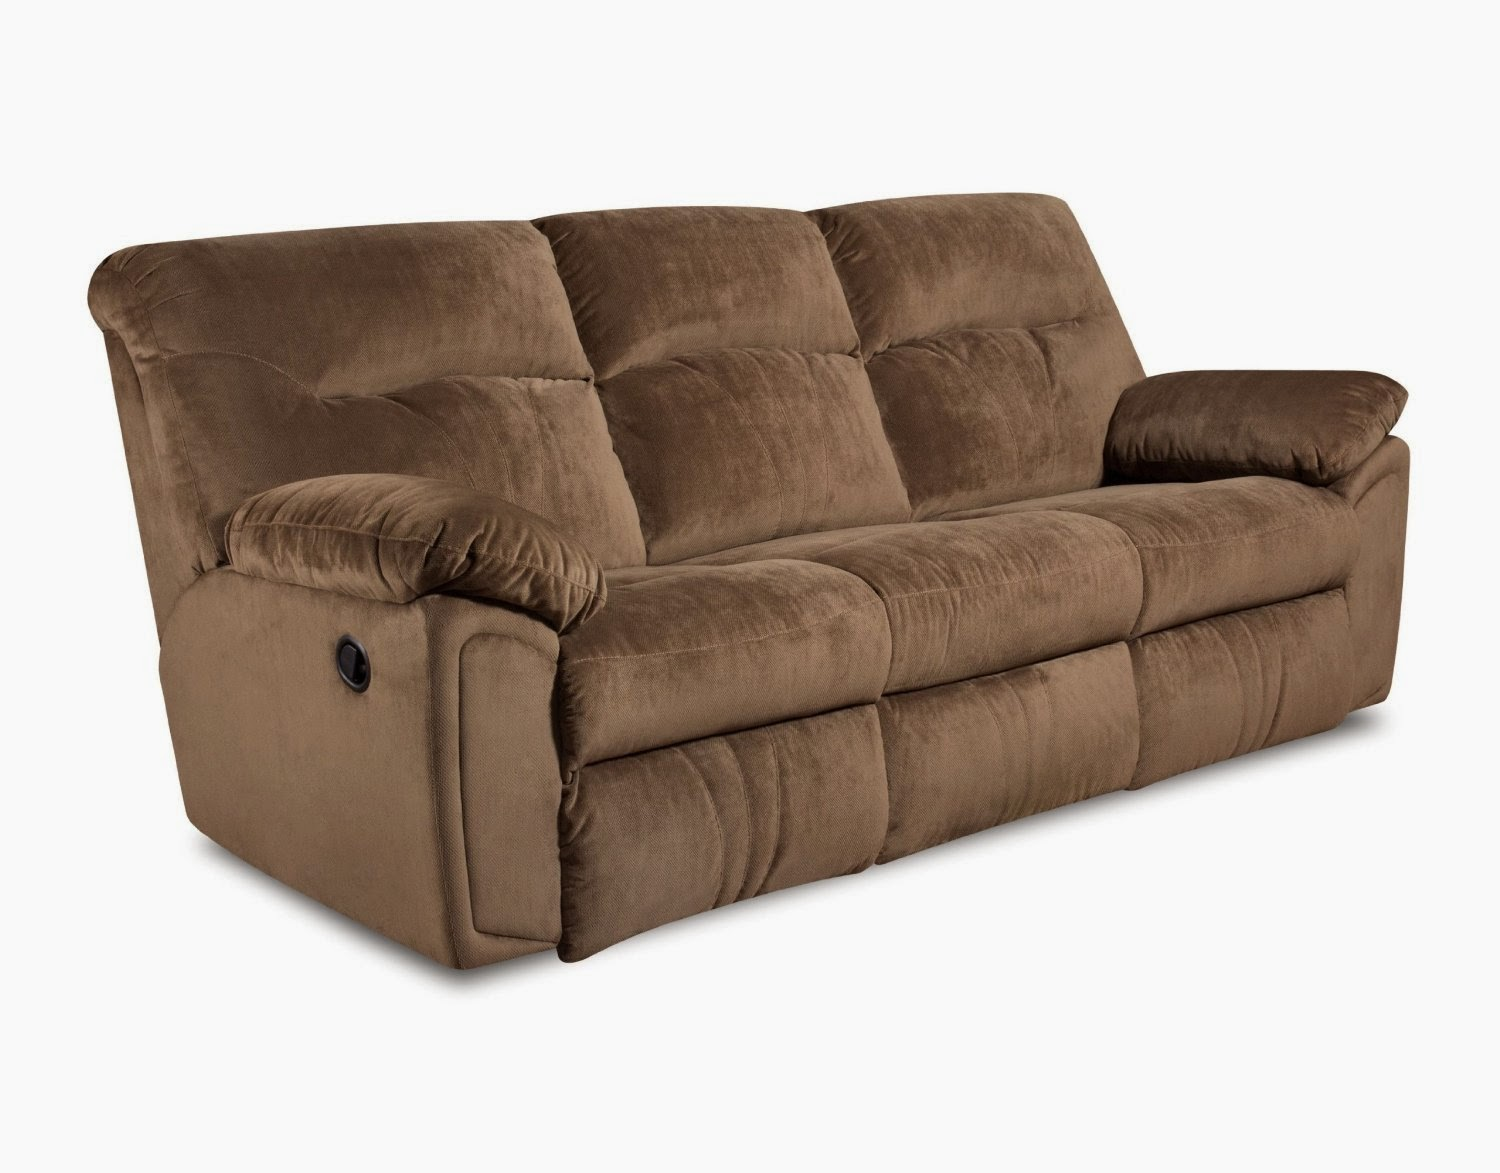 The Best Reclining Sofa Reviews: Southern Motion Reclining ...